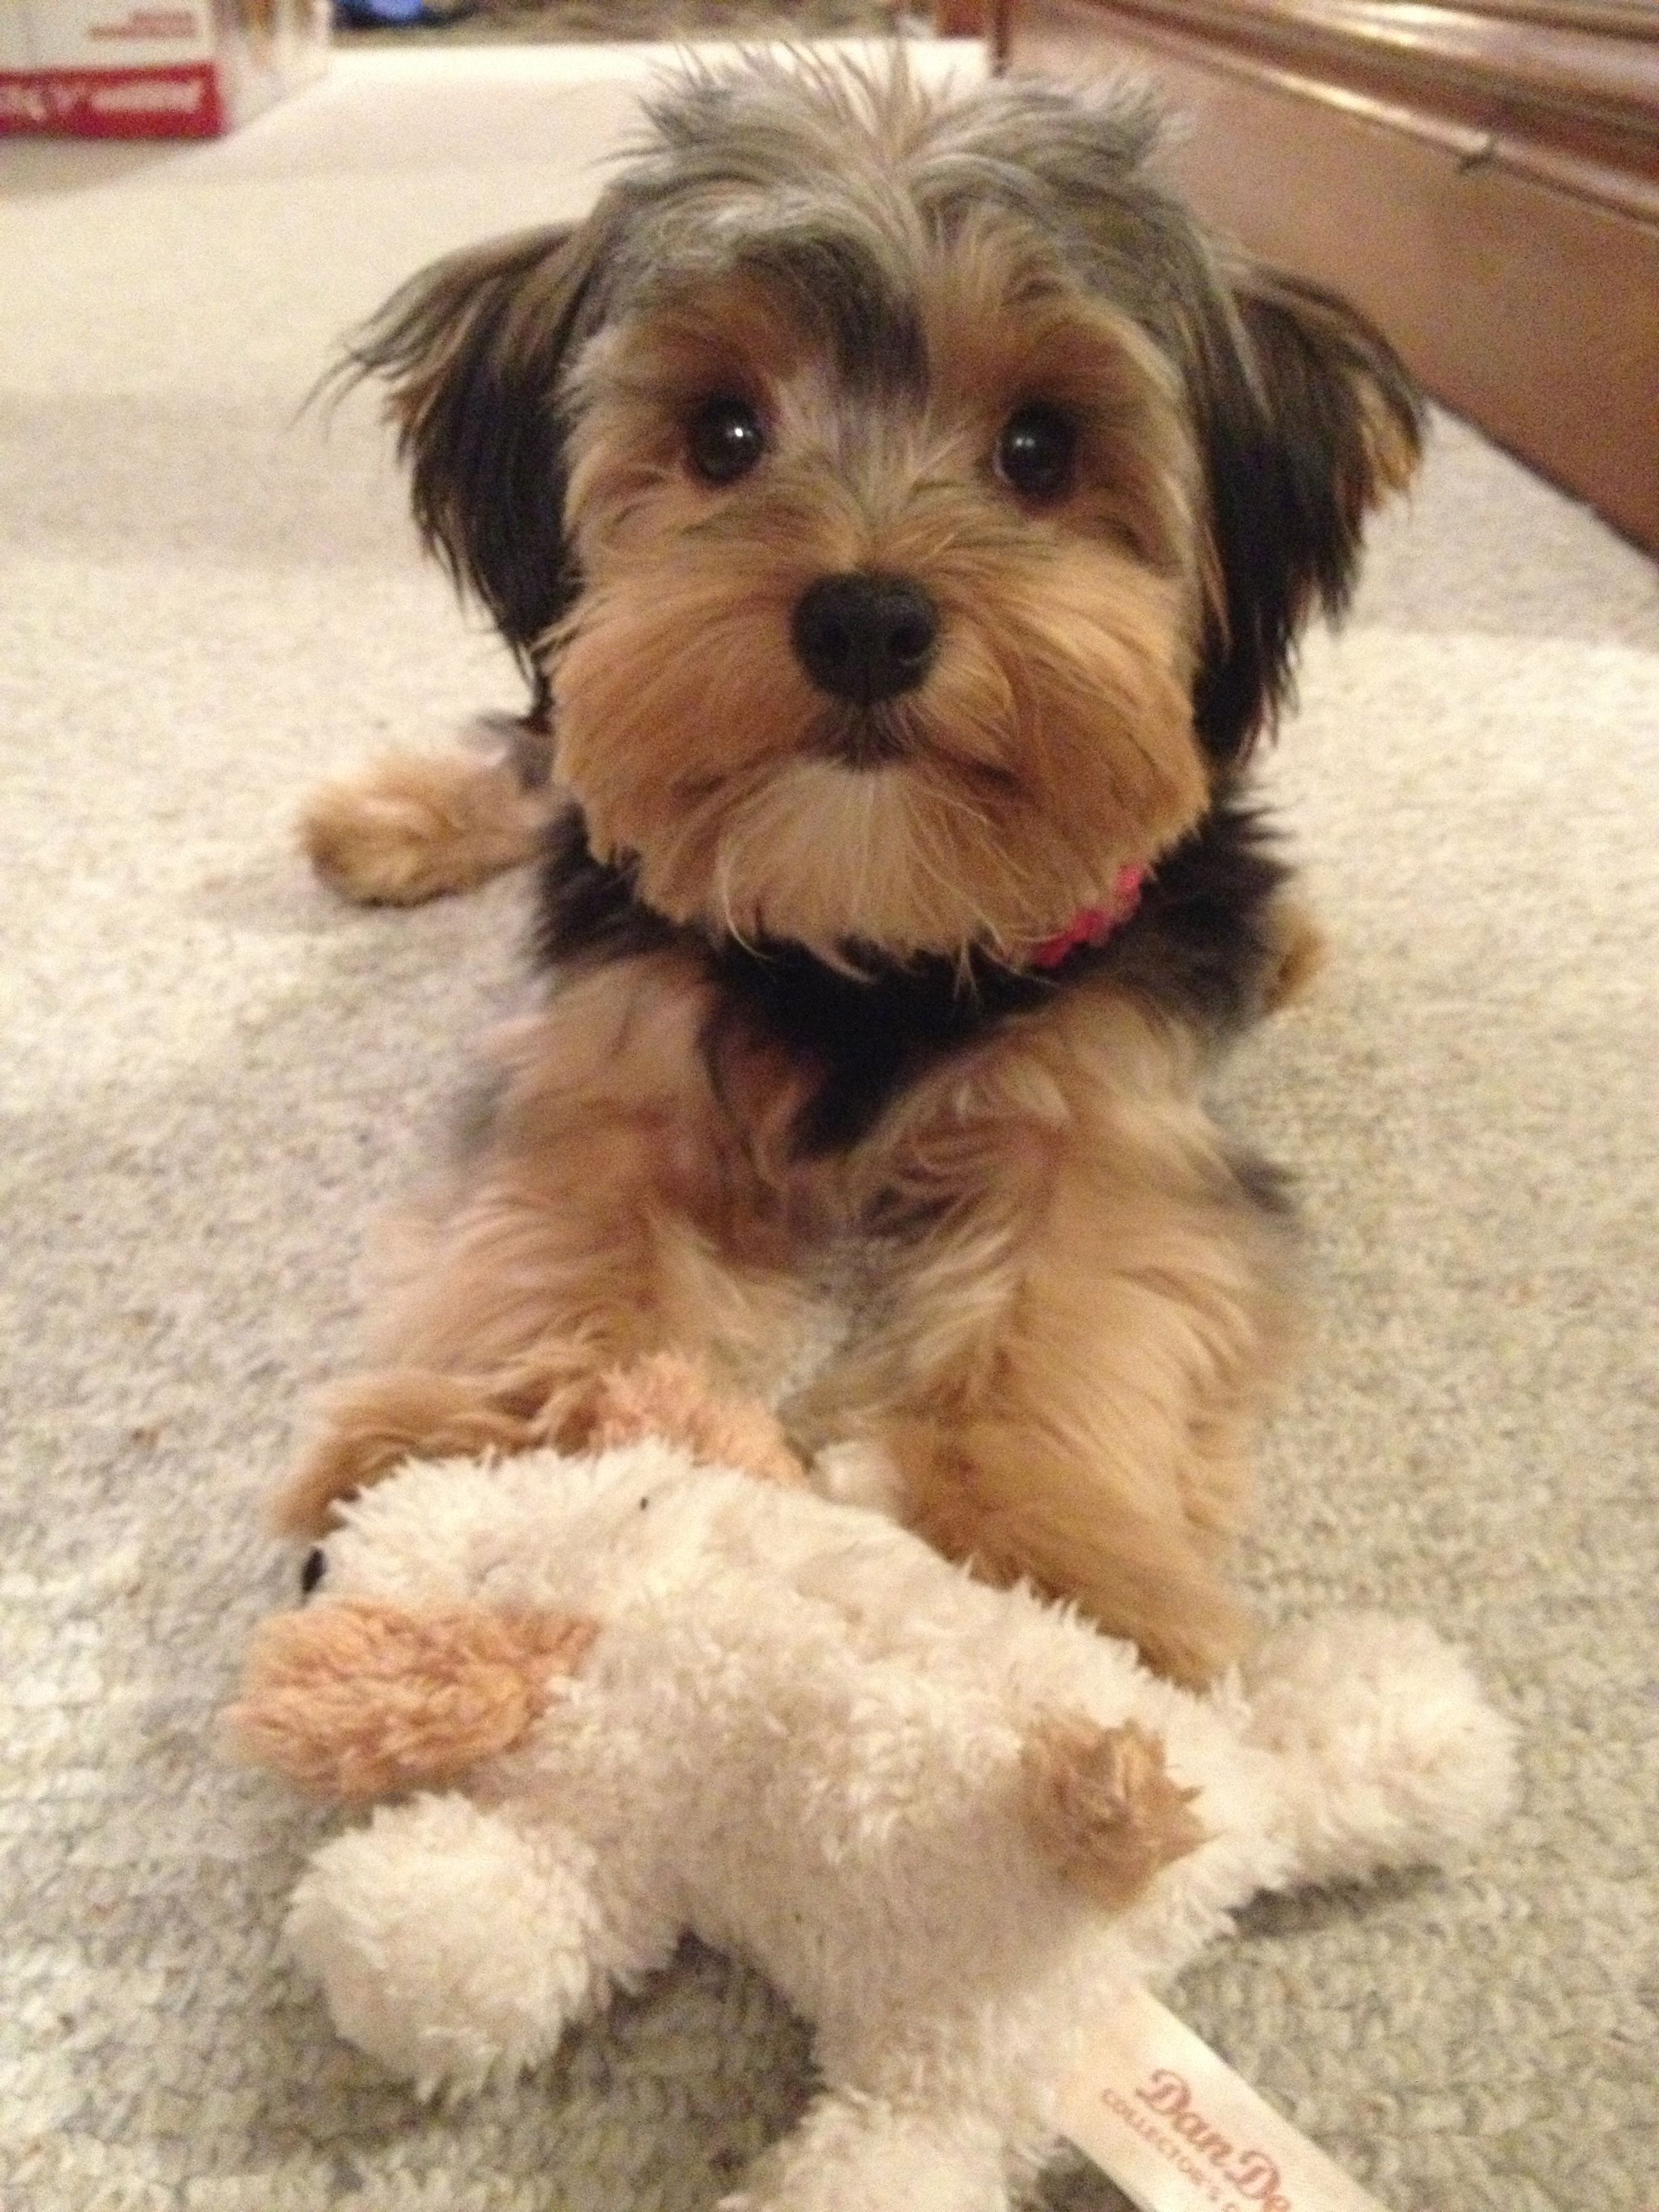 Pin By Marianne Williams On Ruby 3 Yorkie Poo Haircut Yorkie Poo Morkie Puppies